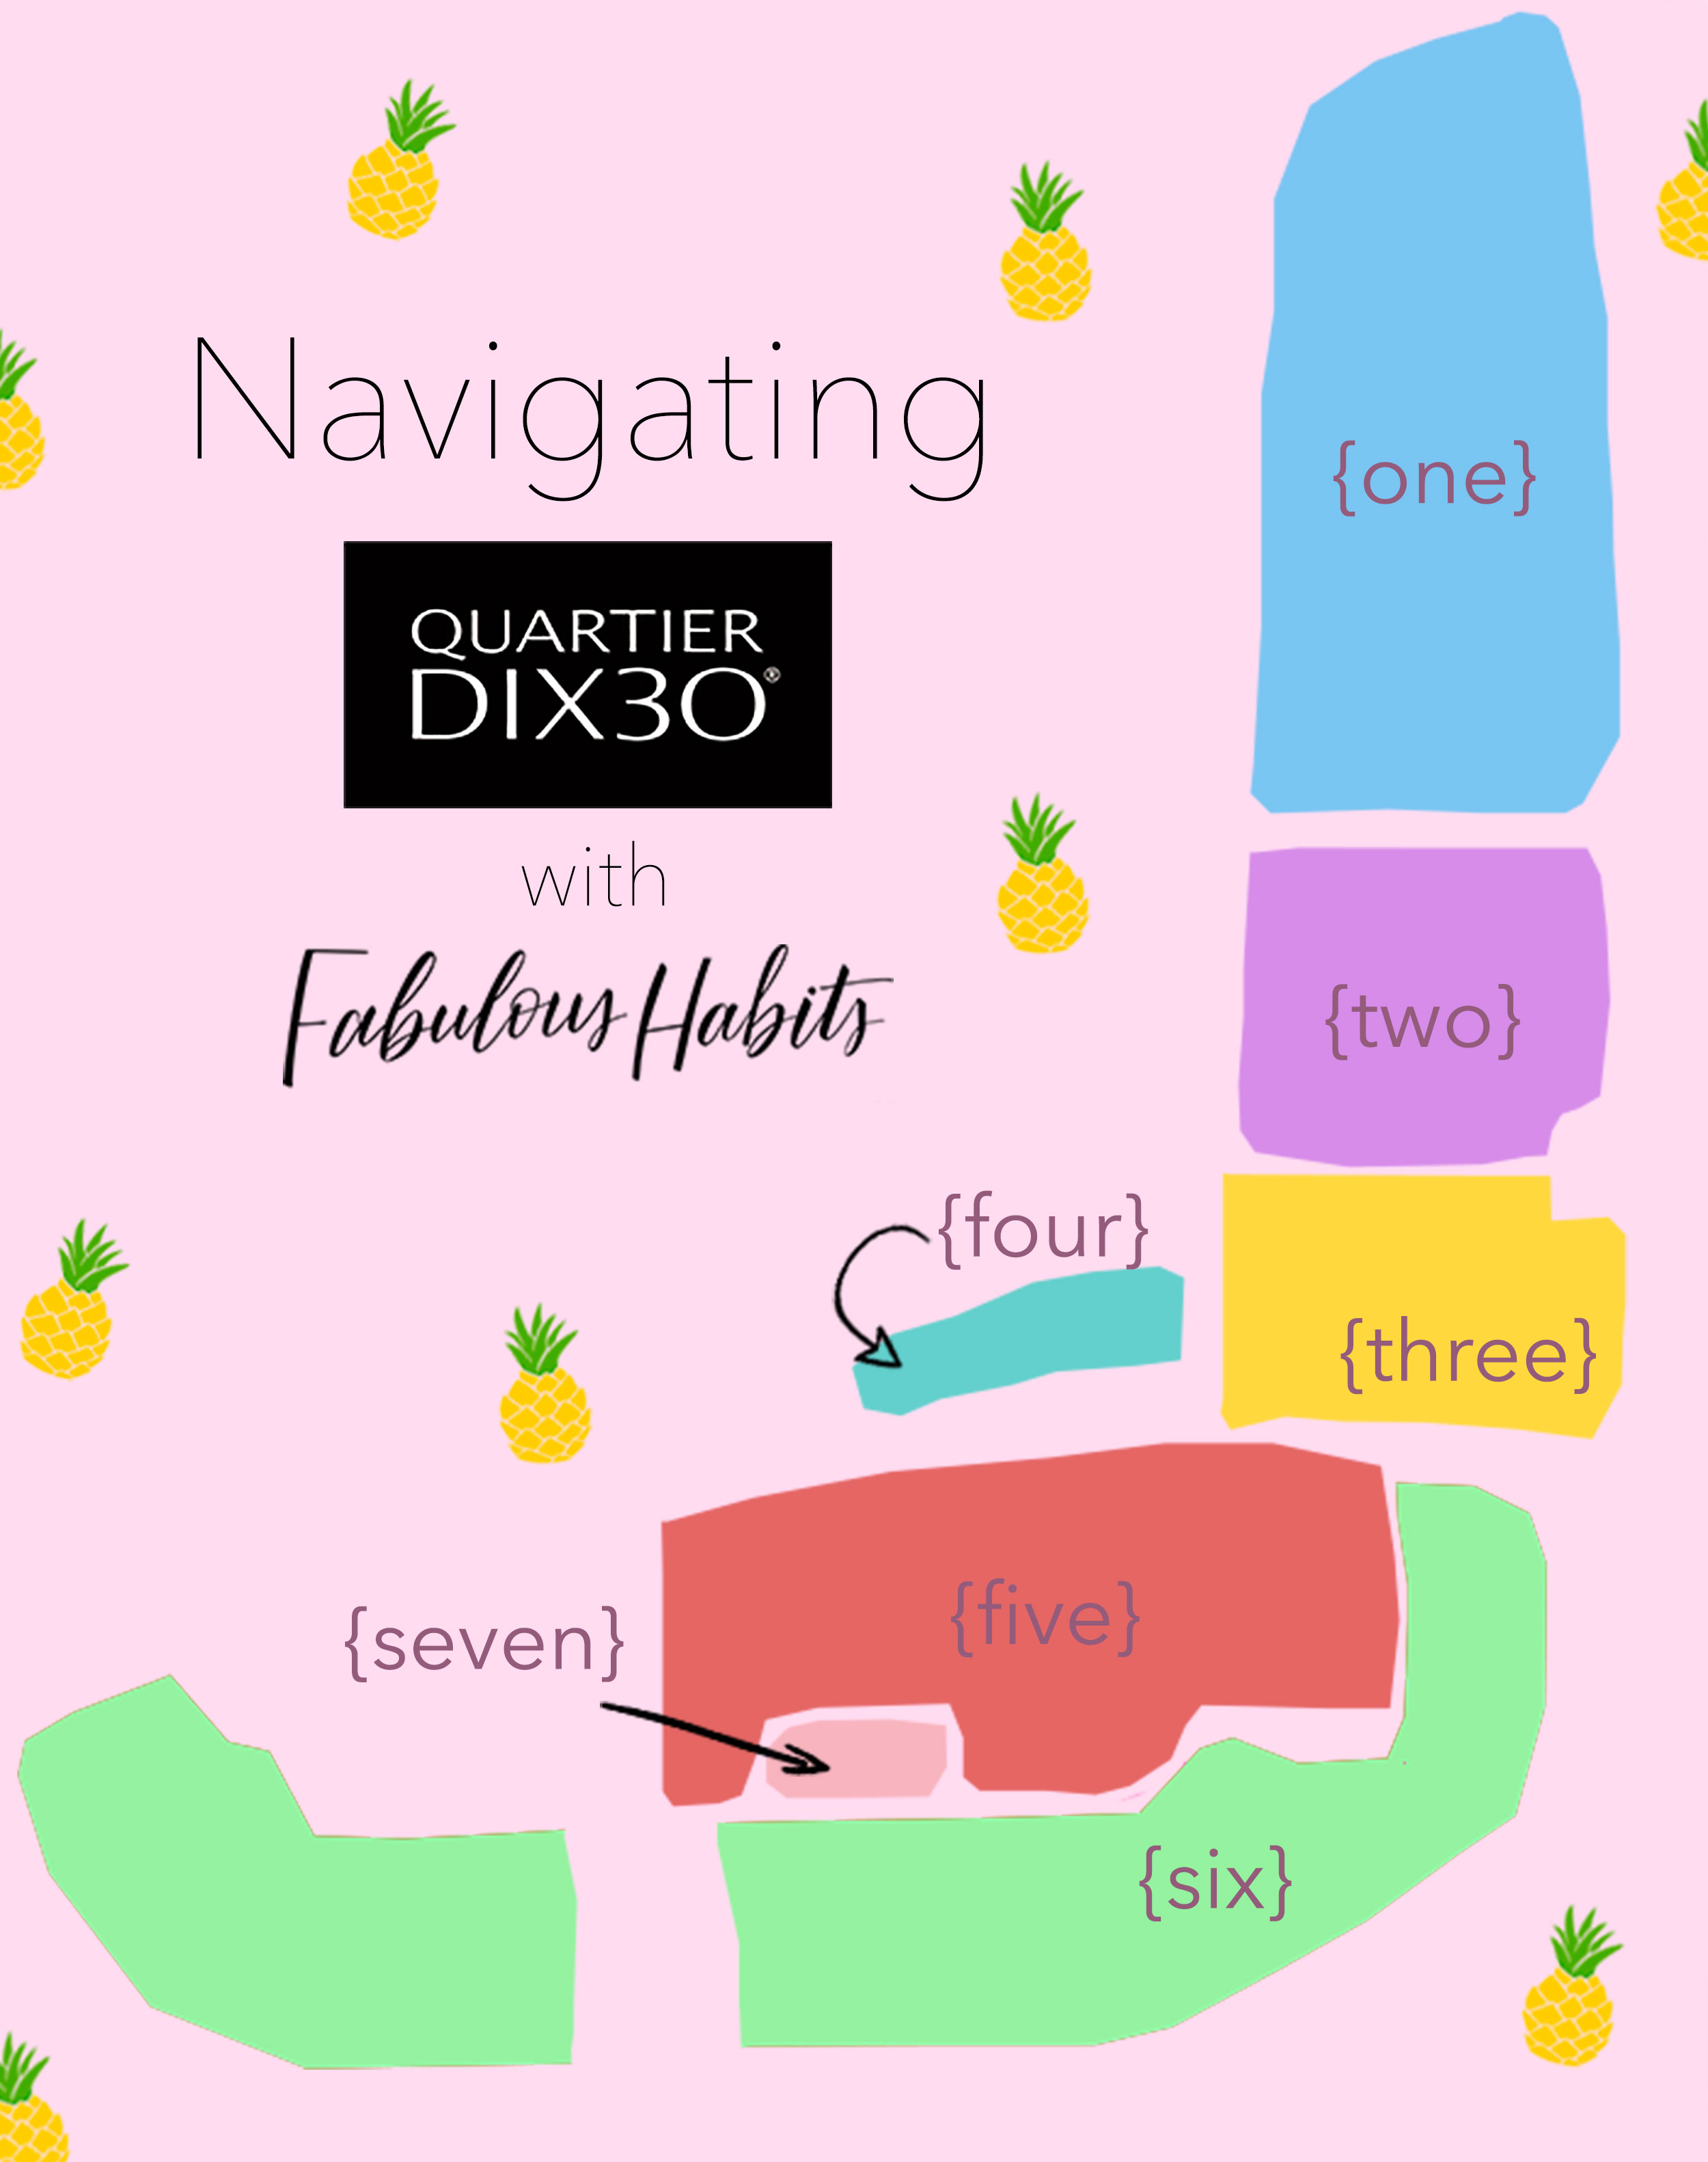 Travelling through the province of Quebec? Be sure to take a day to shop at Quartier DIX30 - Canada's first-ever lifestyle centre! Here are our best tips on how to navigate Quartier DIX30!